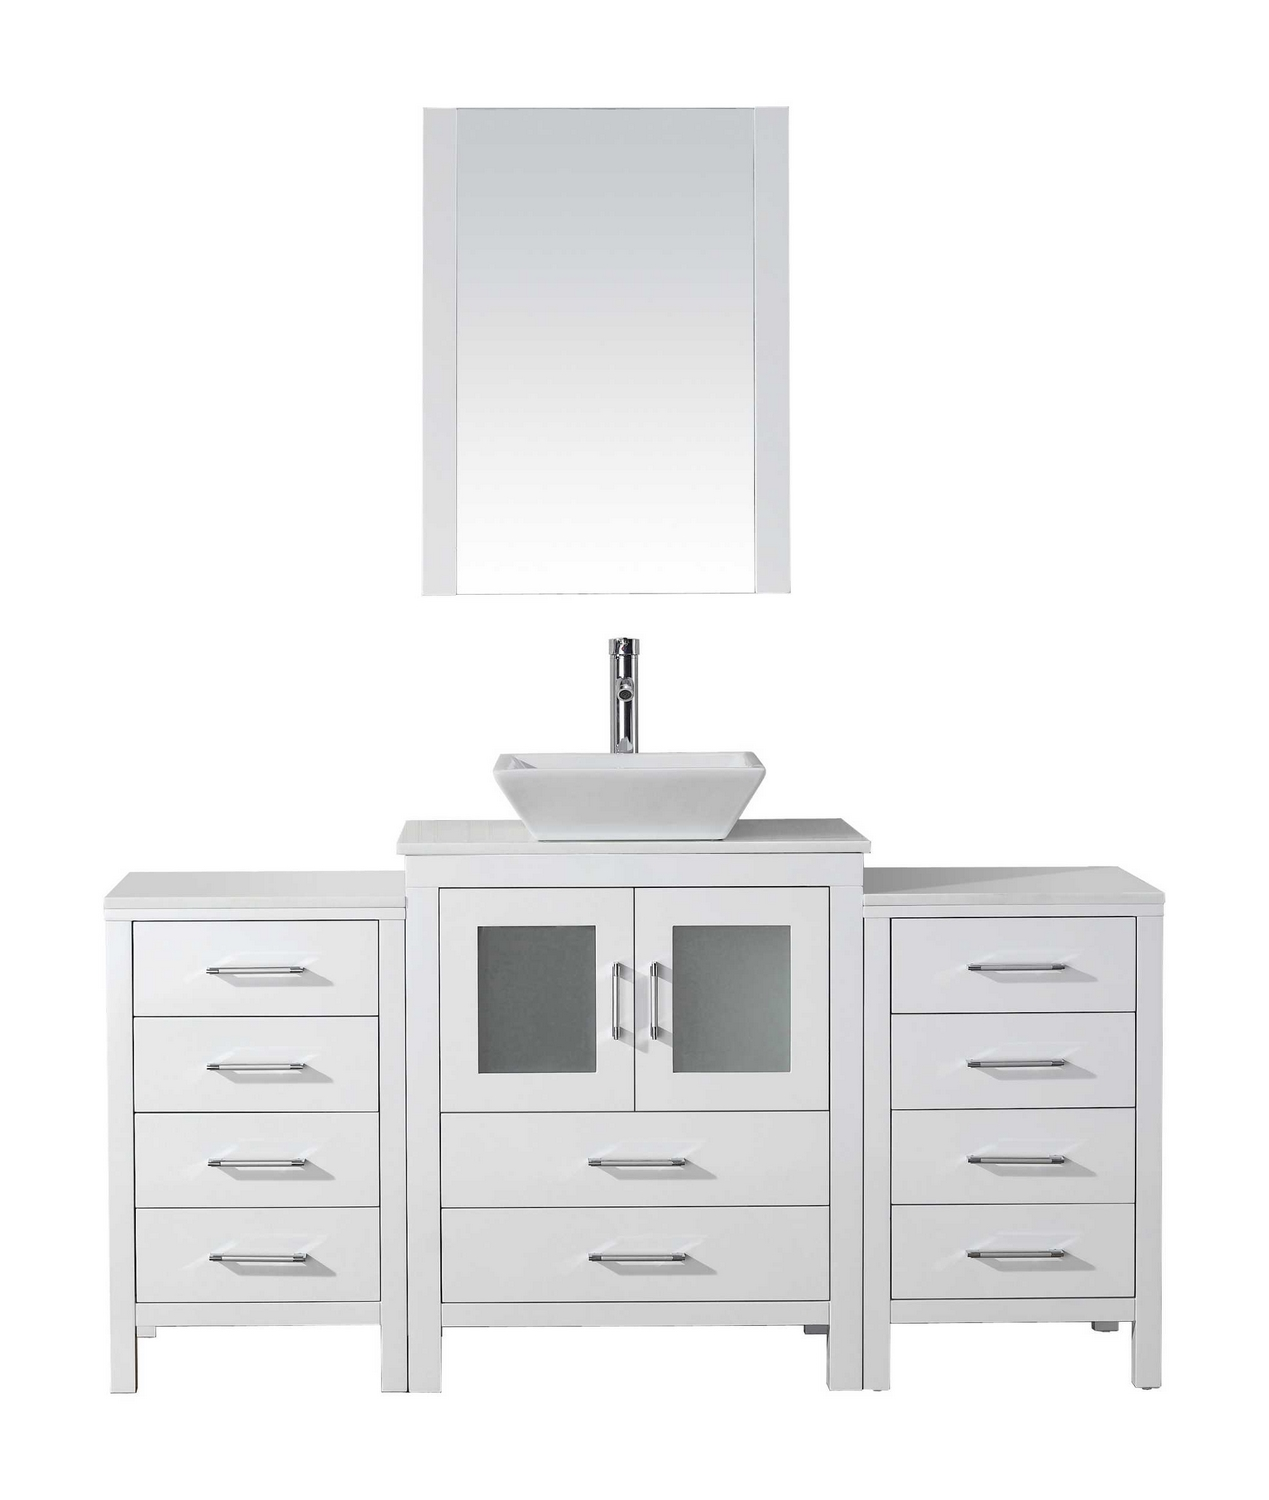 virtu usa dior 64 single bathroom vanity cabinet set in white pure